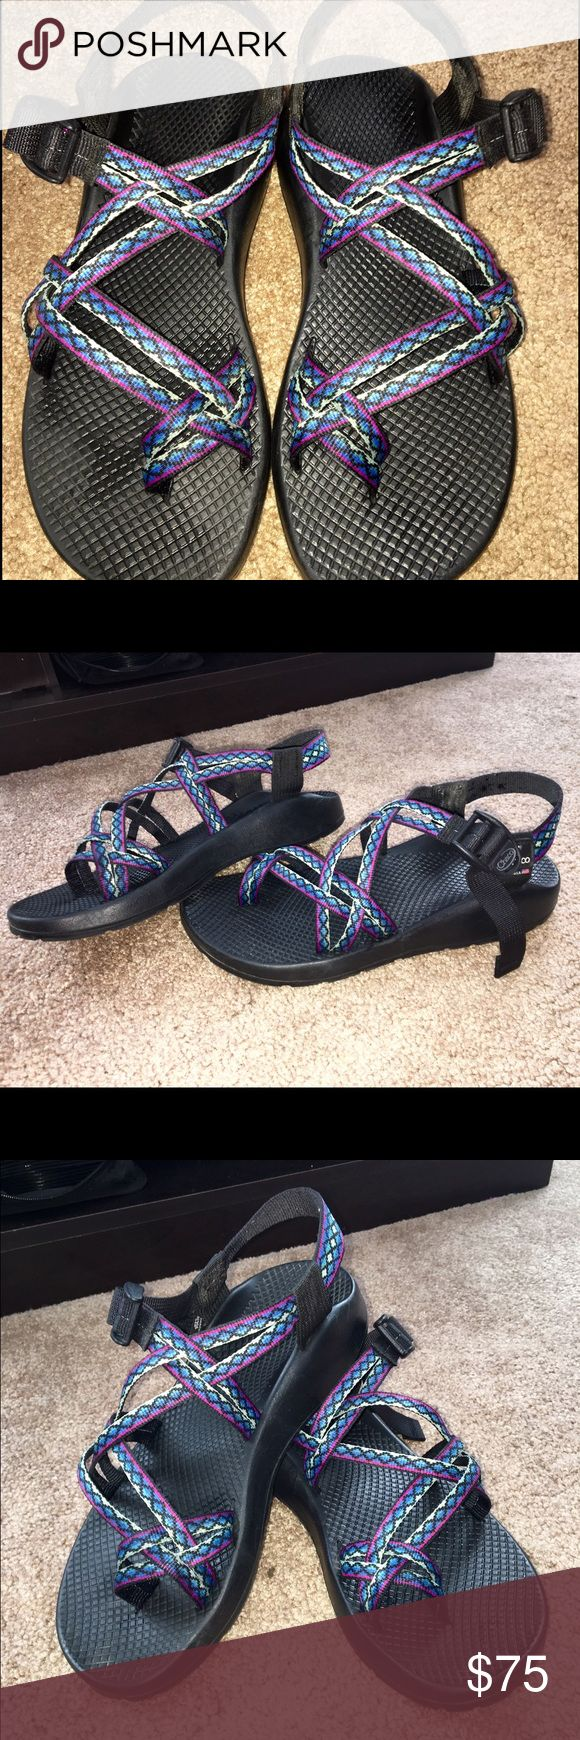 Double strap chacos with toe strap Only worn about 4 times, In great condition. Black soles with purple, blue, black, and turquoise designed straps. Chacos Shoes Sandals